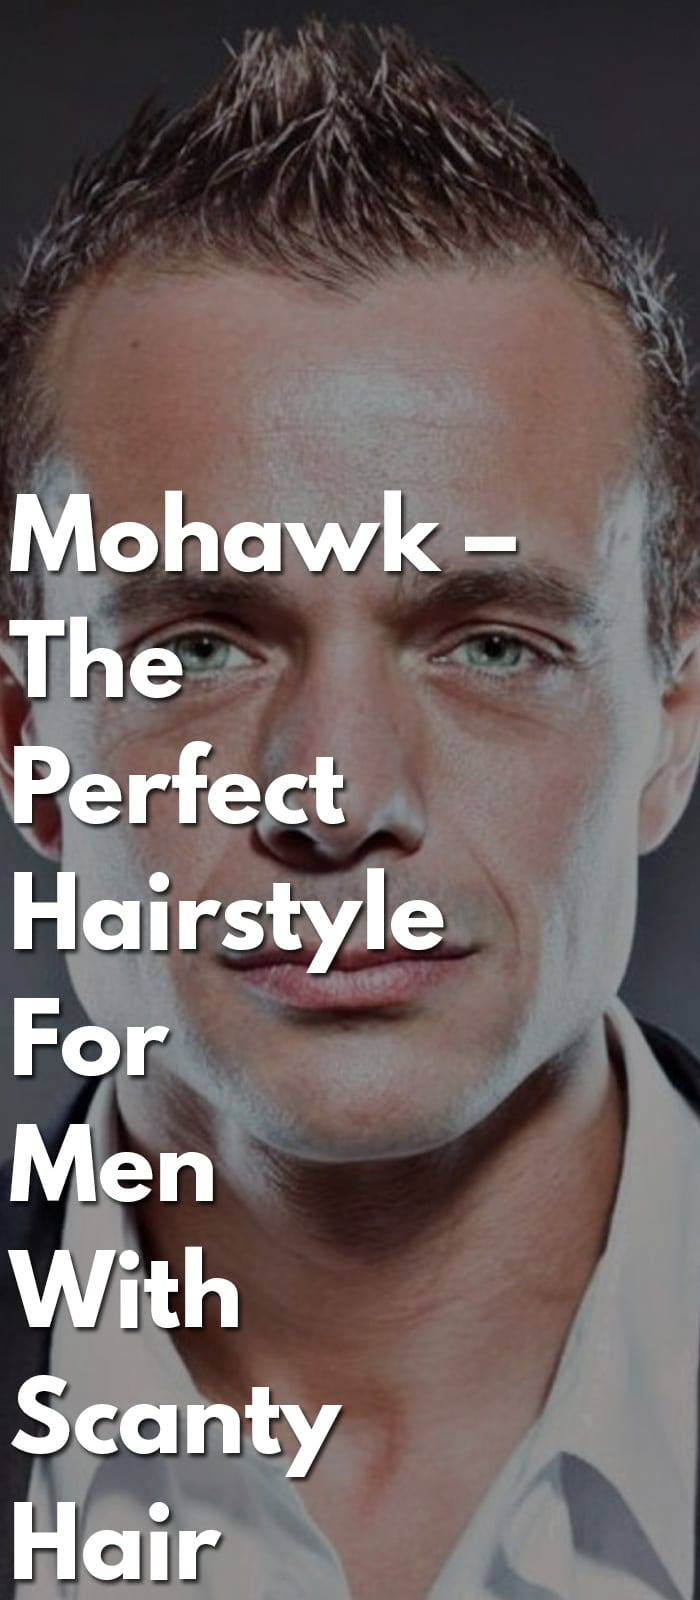 Mohawk-–-The-Perfect-Hairstyle-For-Men-With-Scanty-Hair.